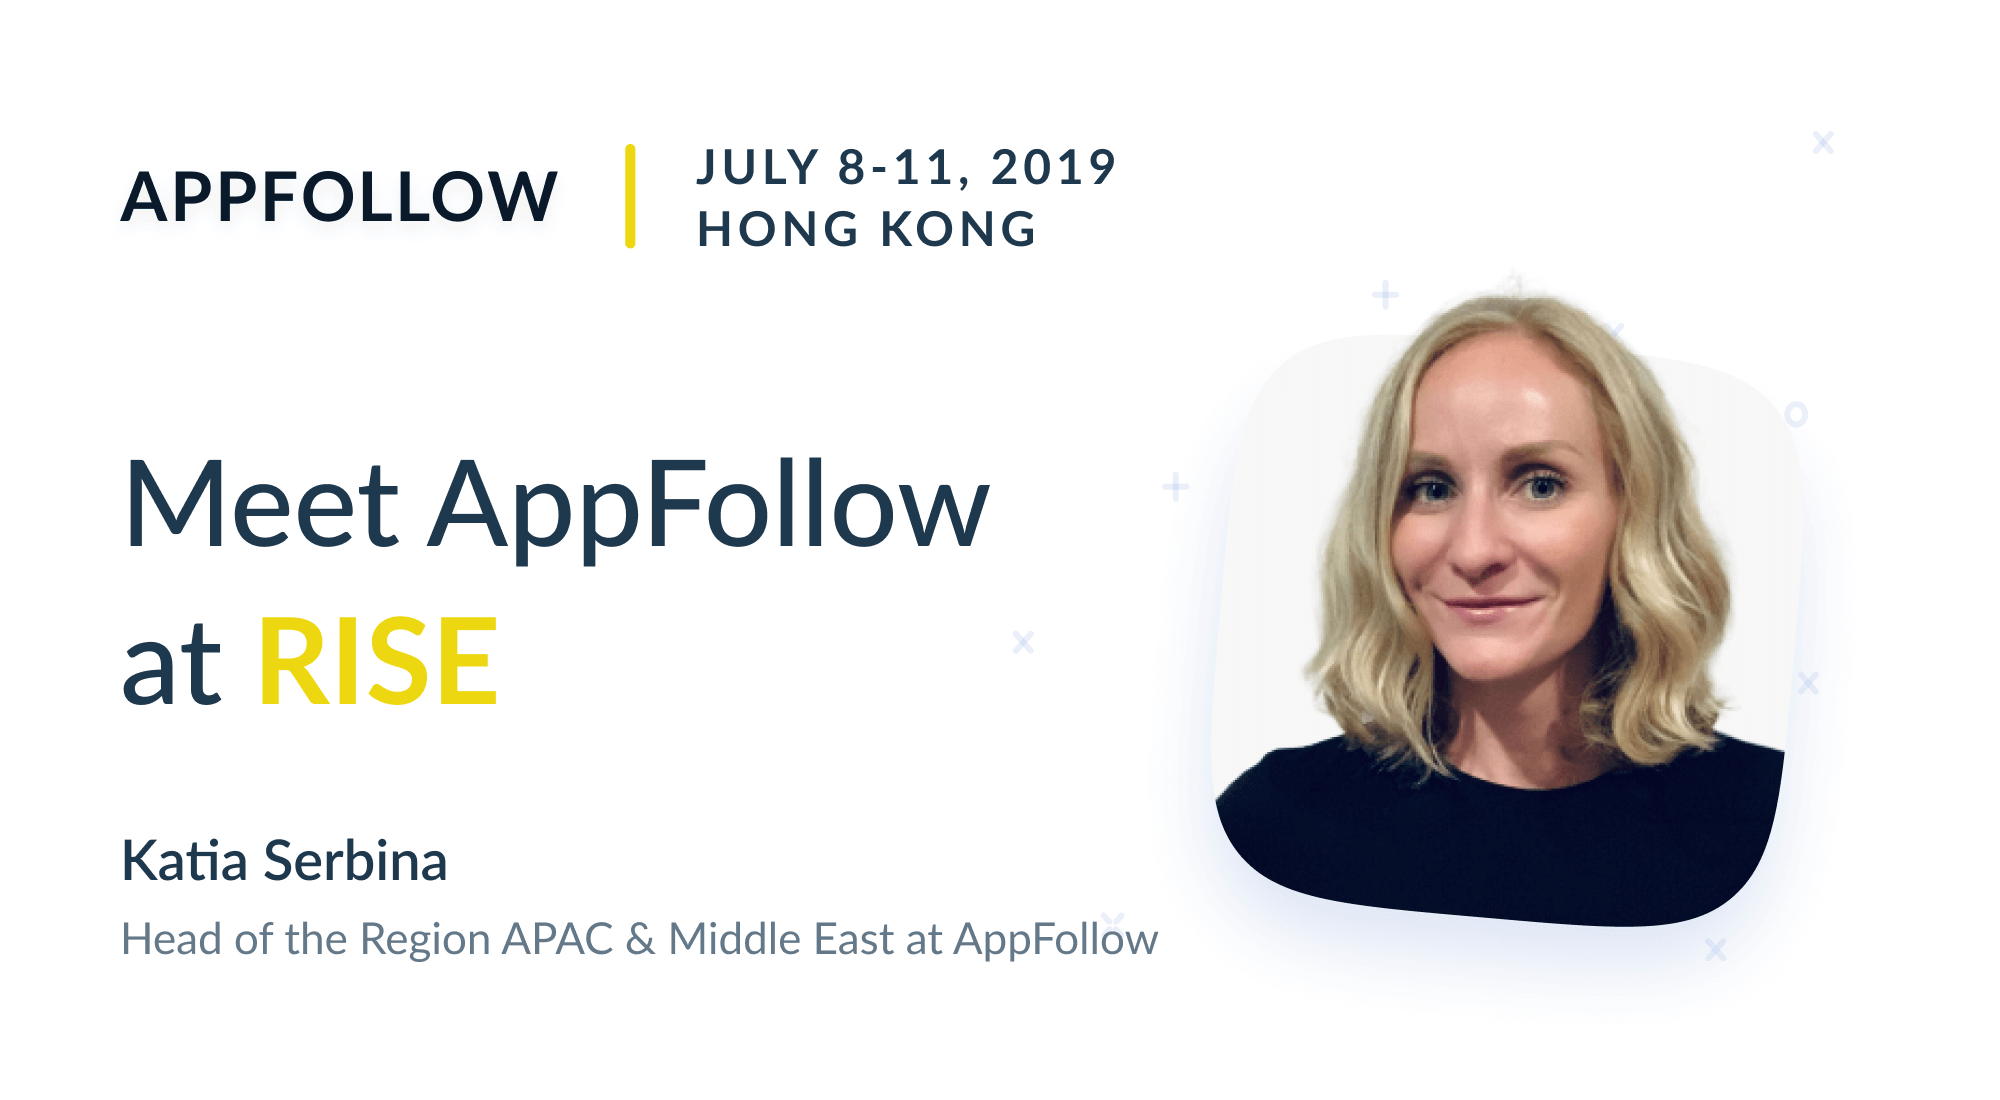 Meet AppFollow at RISE in Hong Kong